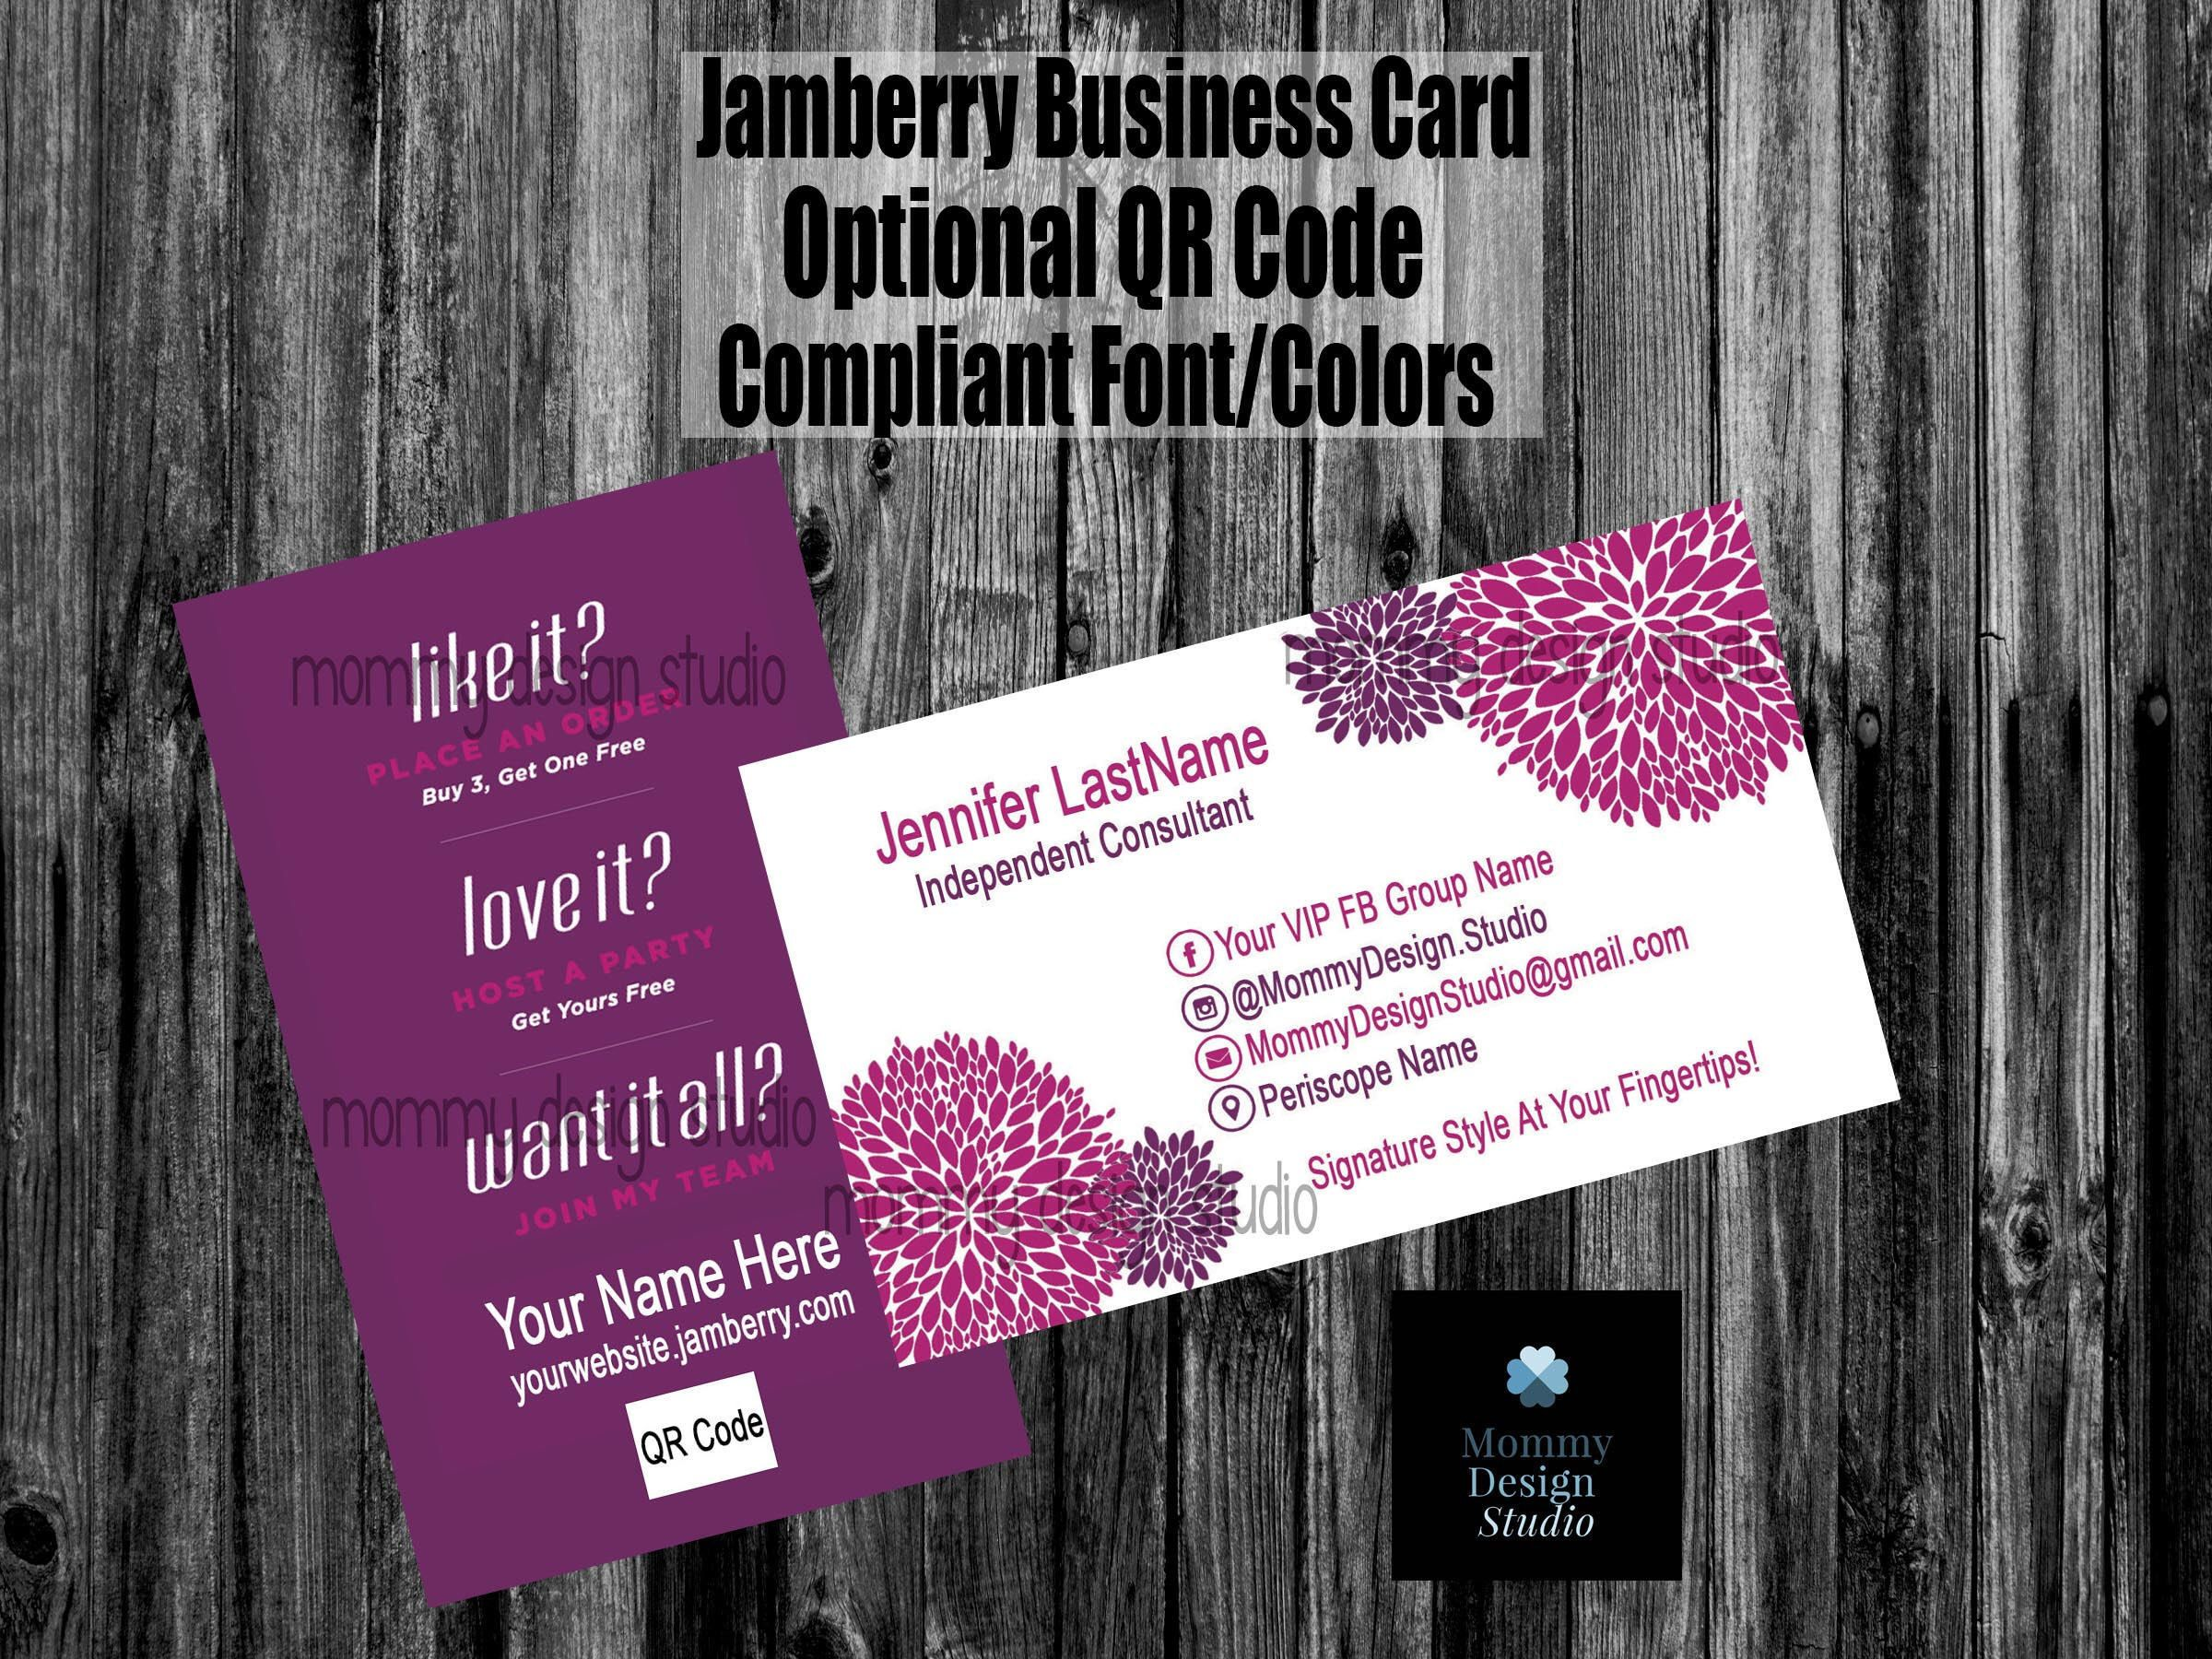 Jamberry business card qr code ho compliant horizontal pom pom jamberry business card qr code ho compliant horizontal pom pom digital file jamberry nails buy 3 get 1 free host join reheart Choice Image